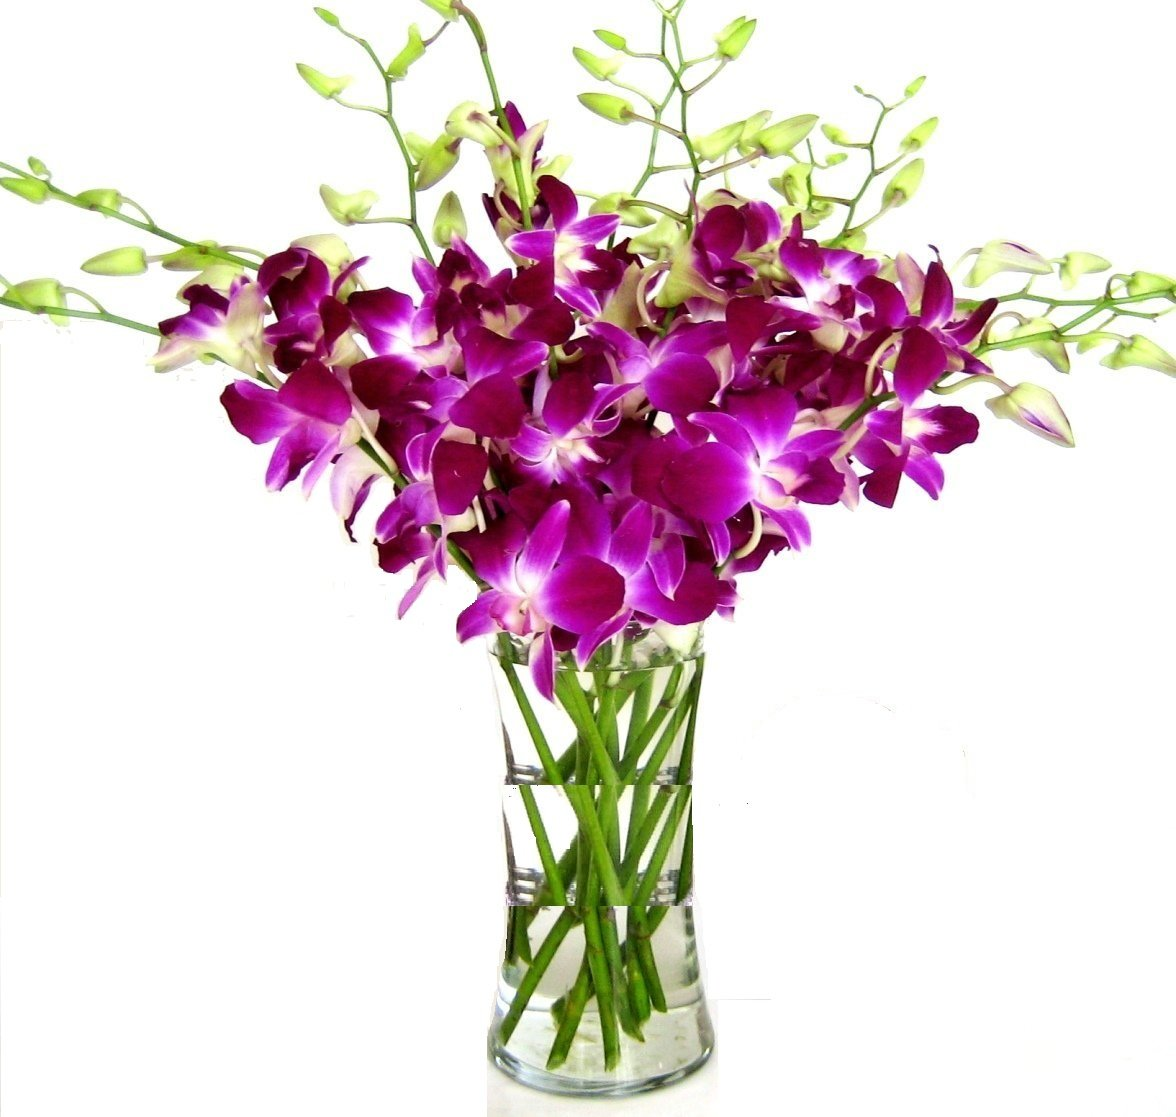 Fresh Cut Flowers -Dendrobium Purple Orchids with Vase by eflowerwholesale (Image #1)